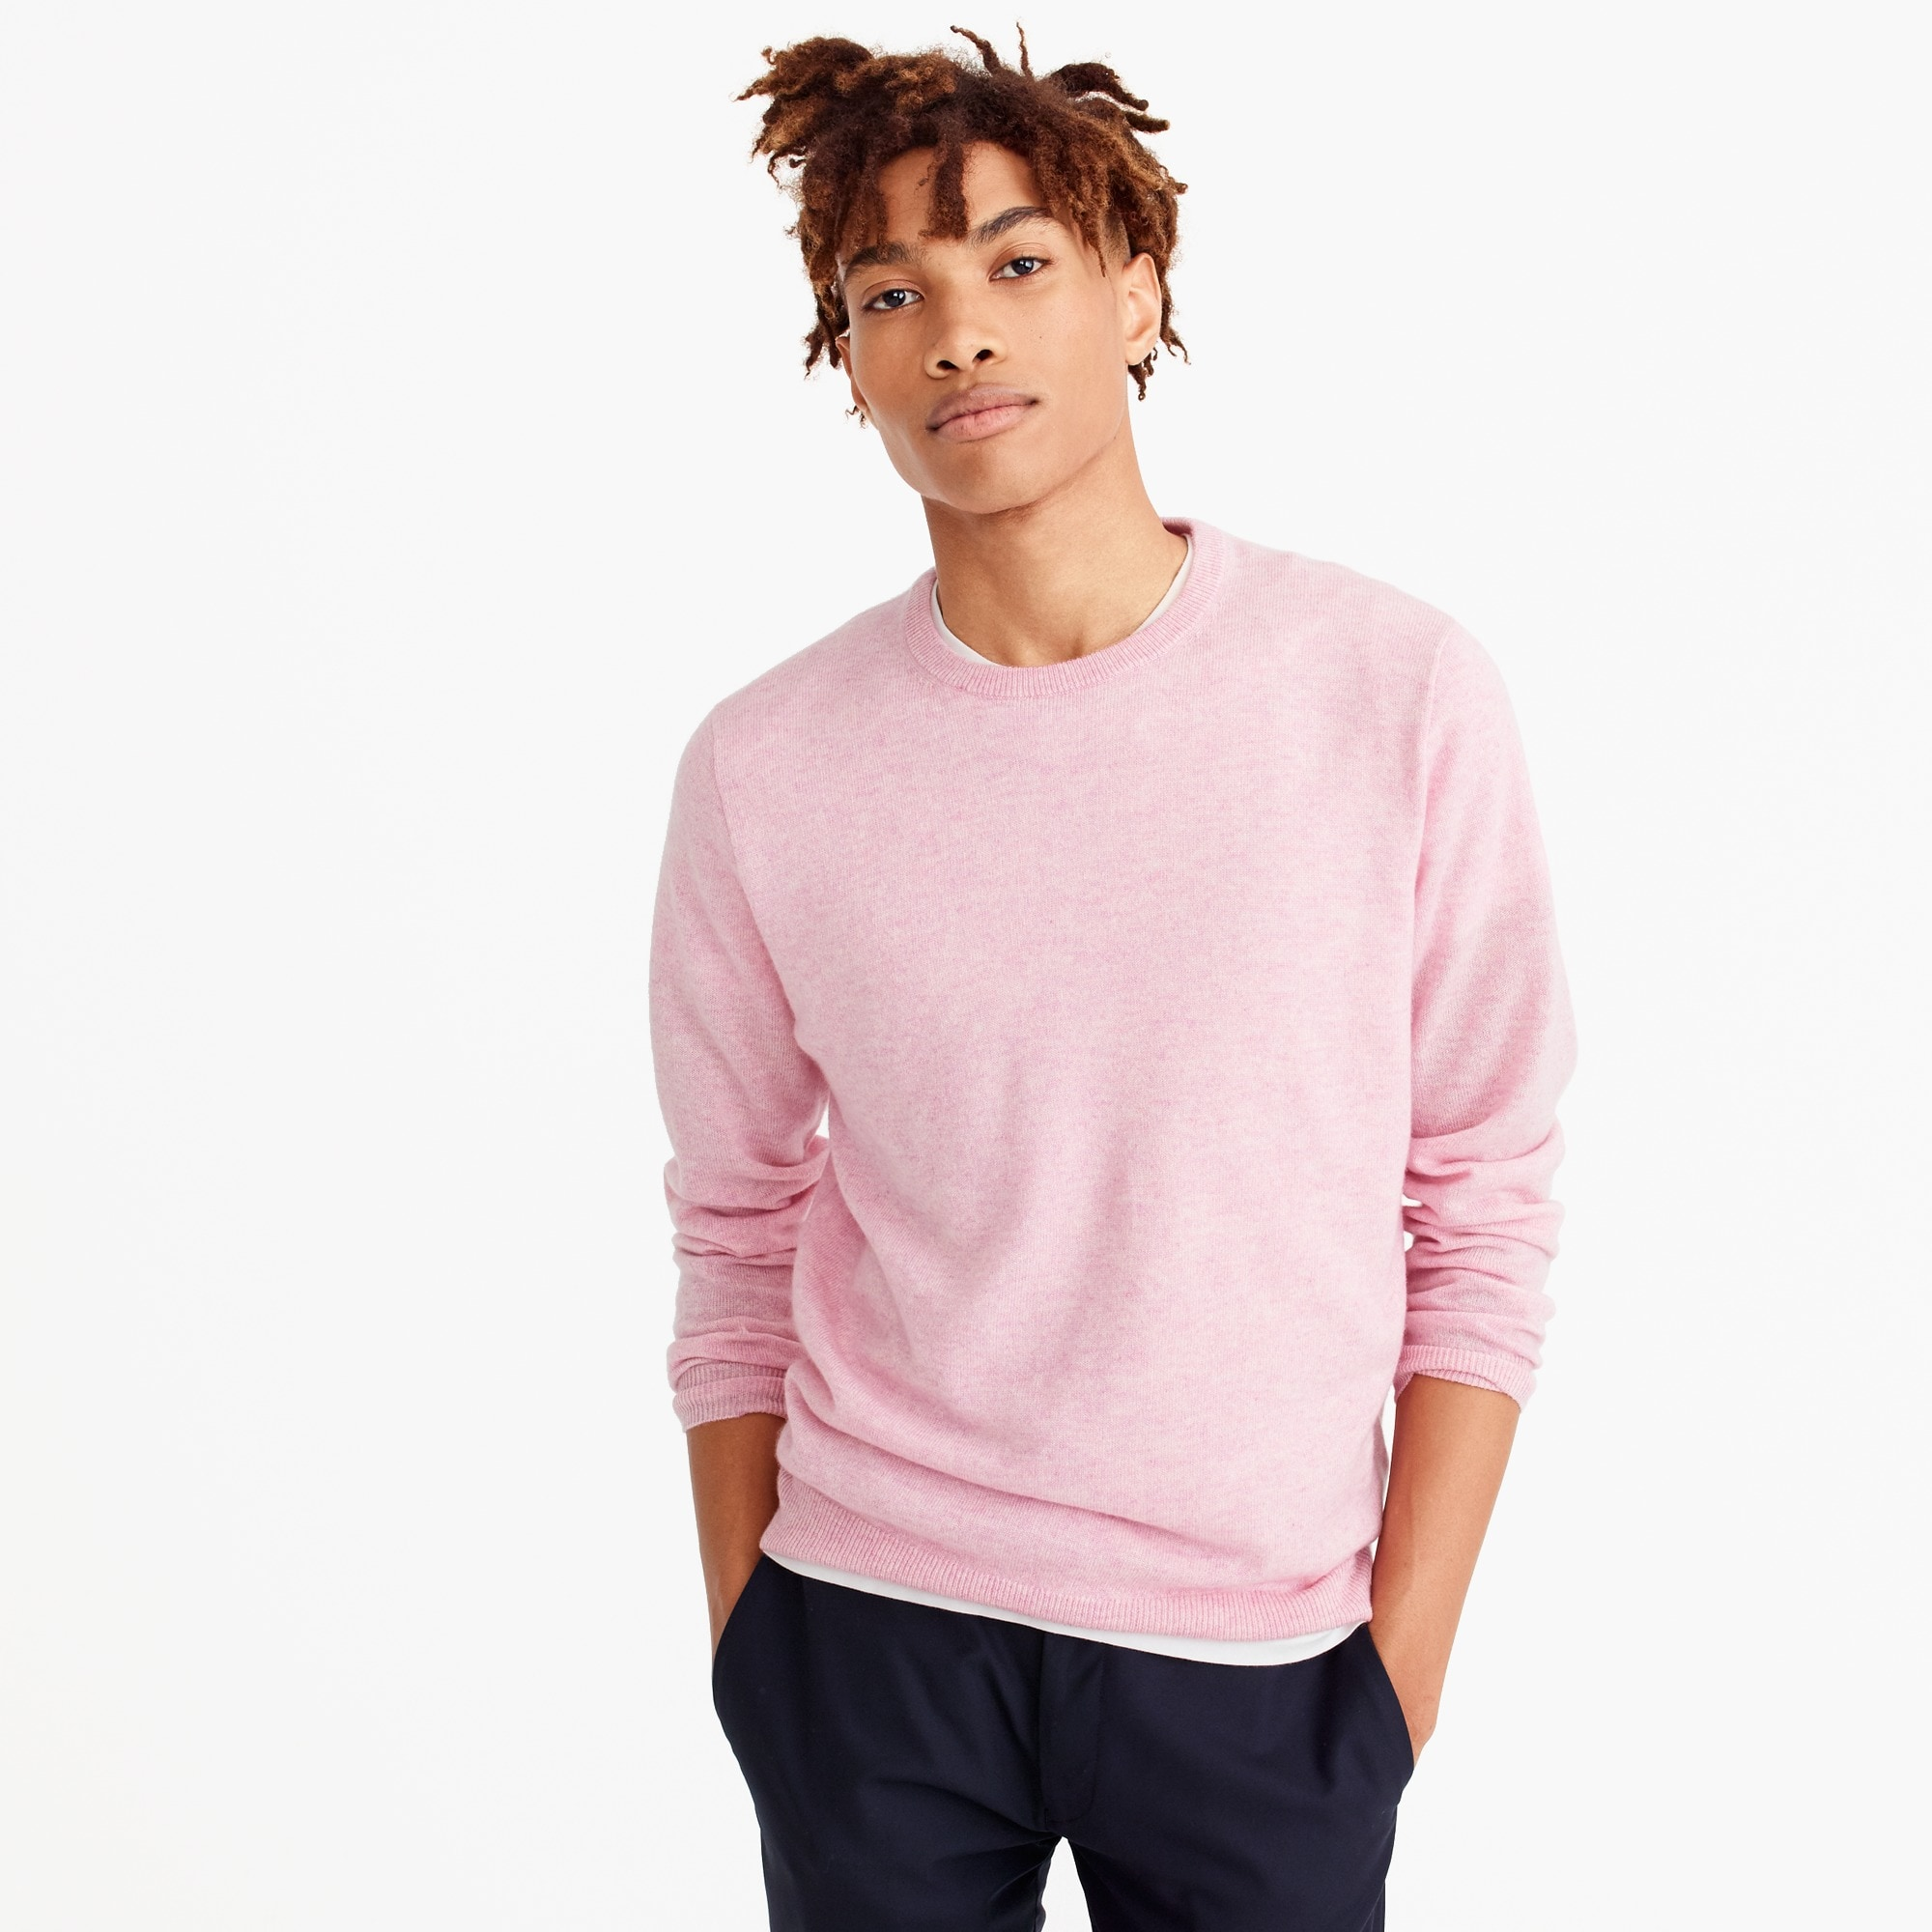 Image 1 for Everyday cashmere crewneck sweater